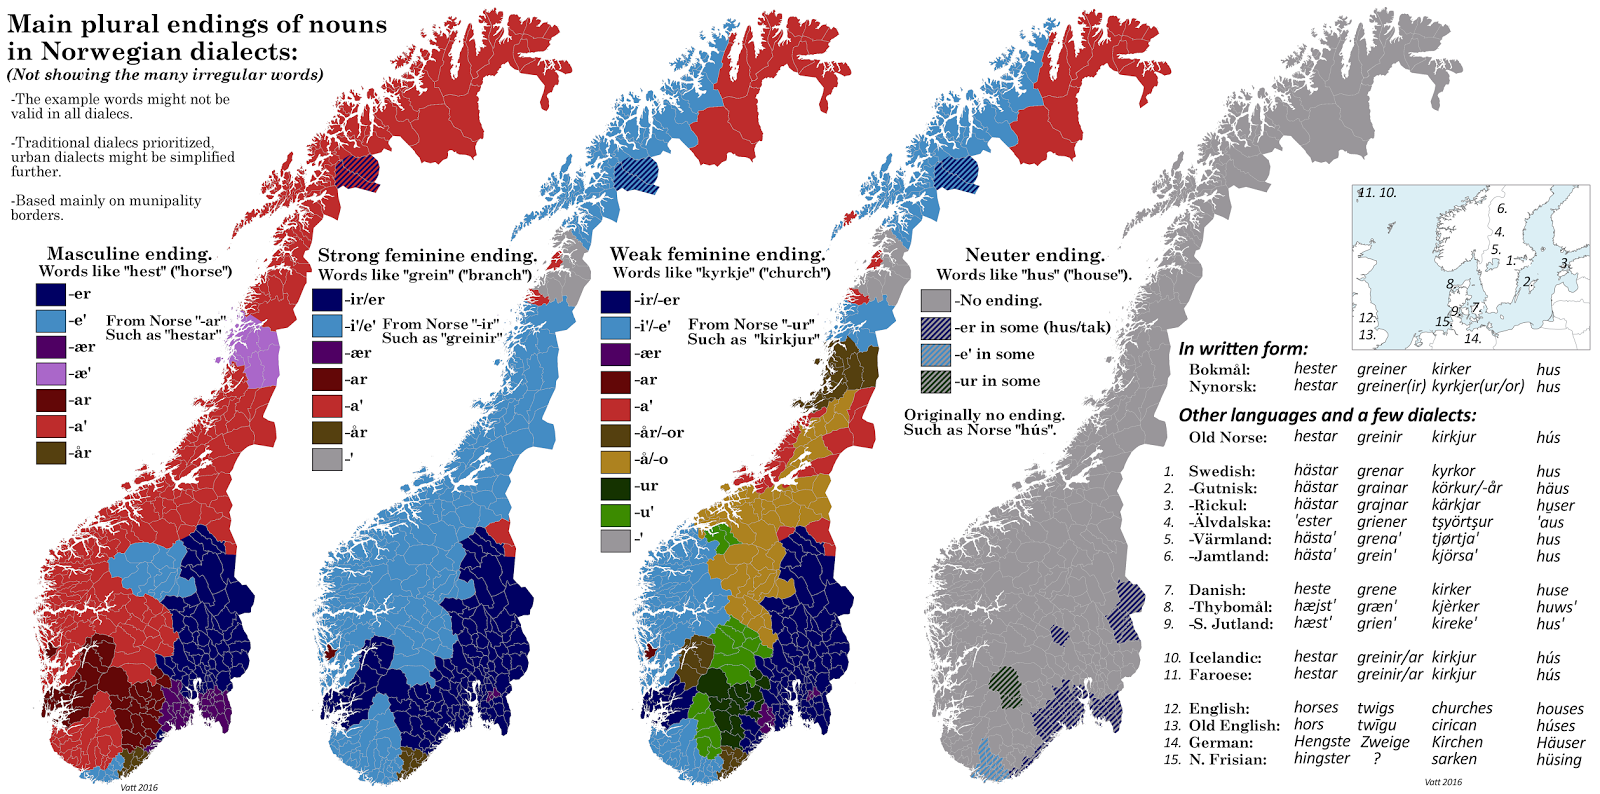 Main plural endings of nouns in Norwegian dialects